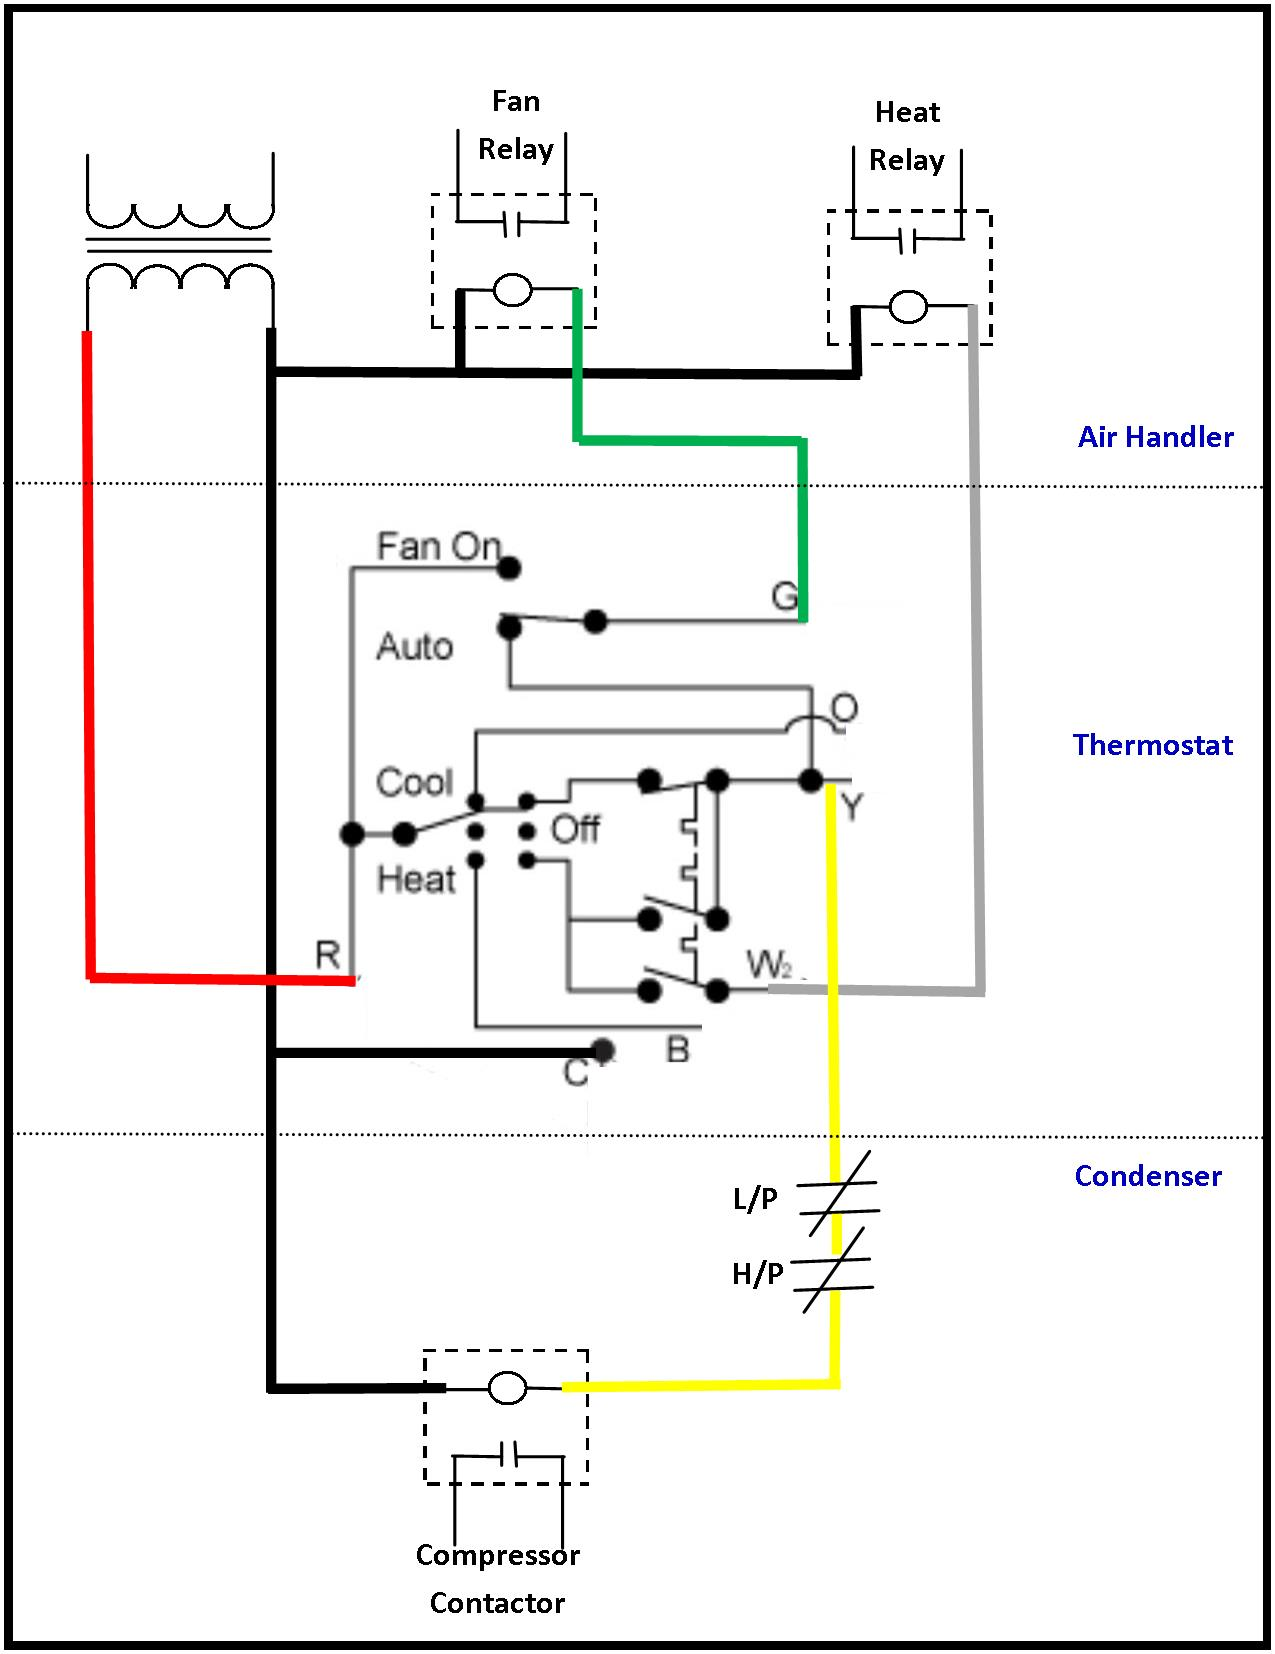 fan center wiring diagram furnace fan limit switch wiring